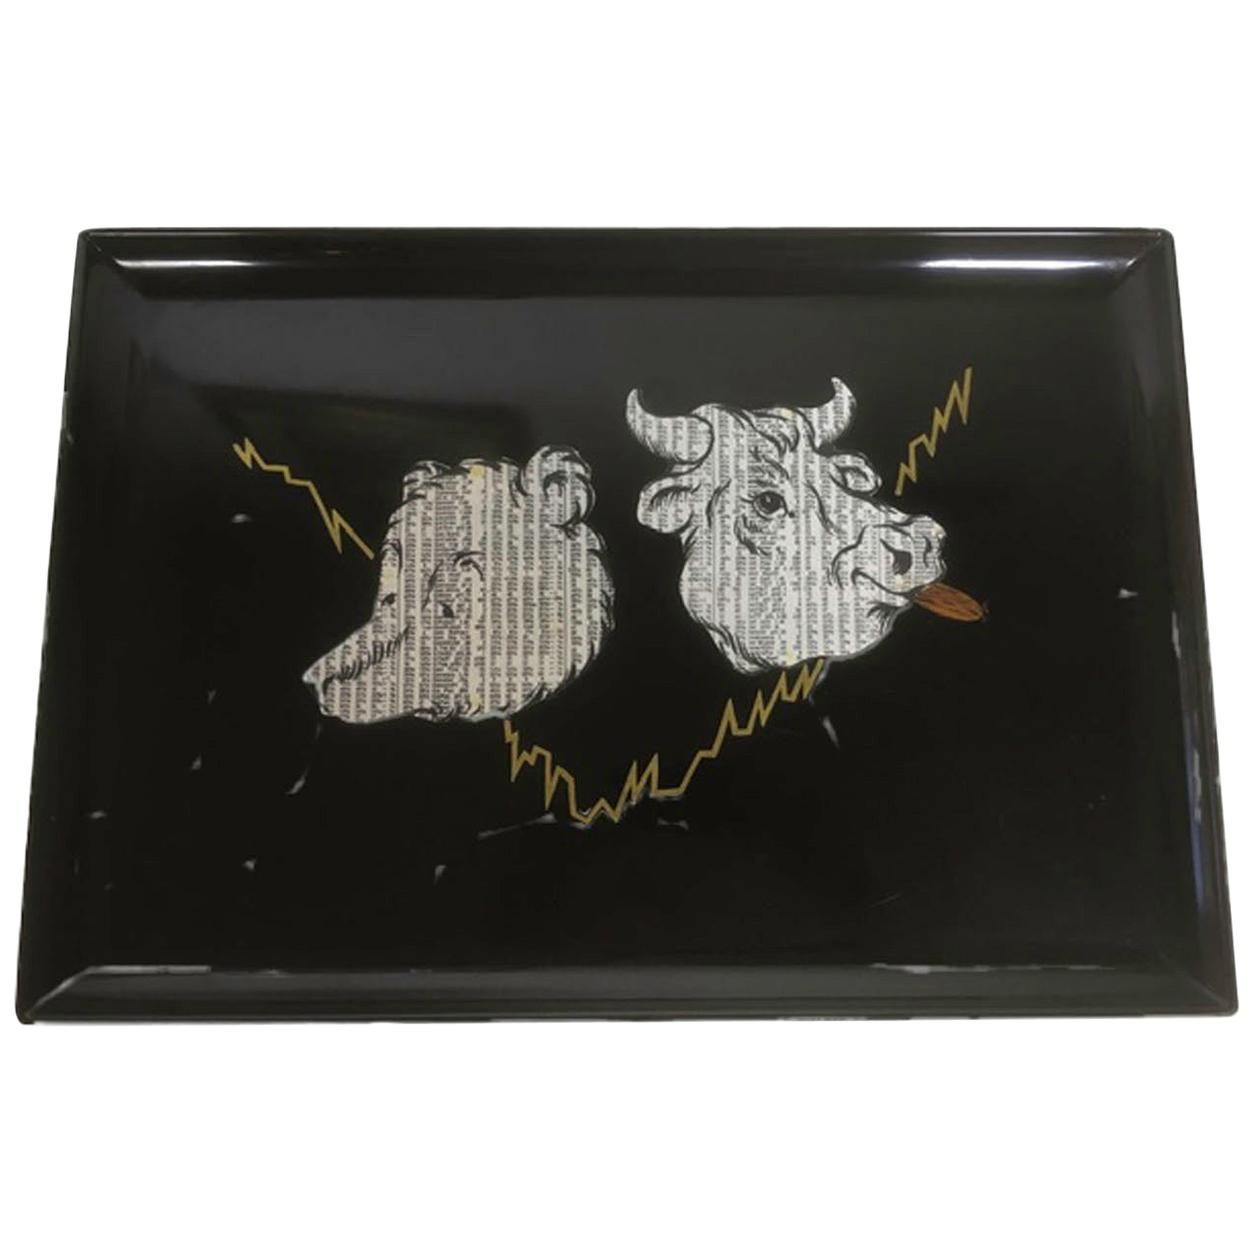 Mid 20th Century Couroc Phenolic Resin Serving Tray, Bull and Bear